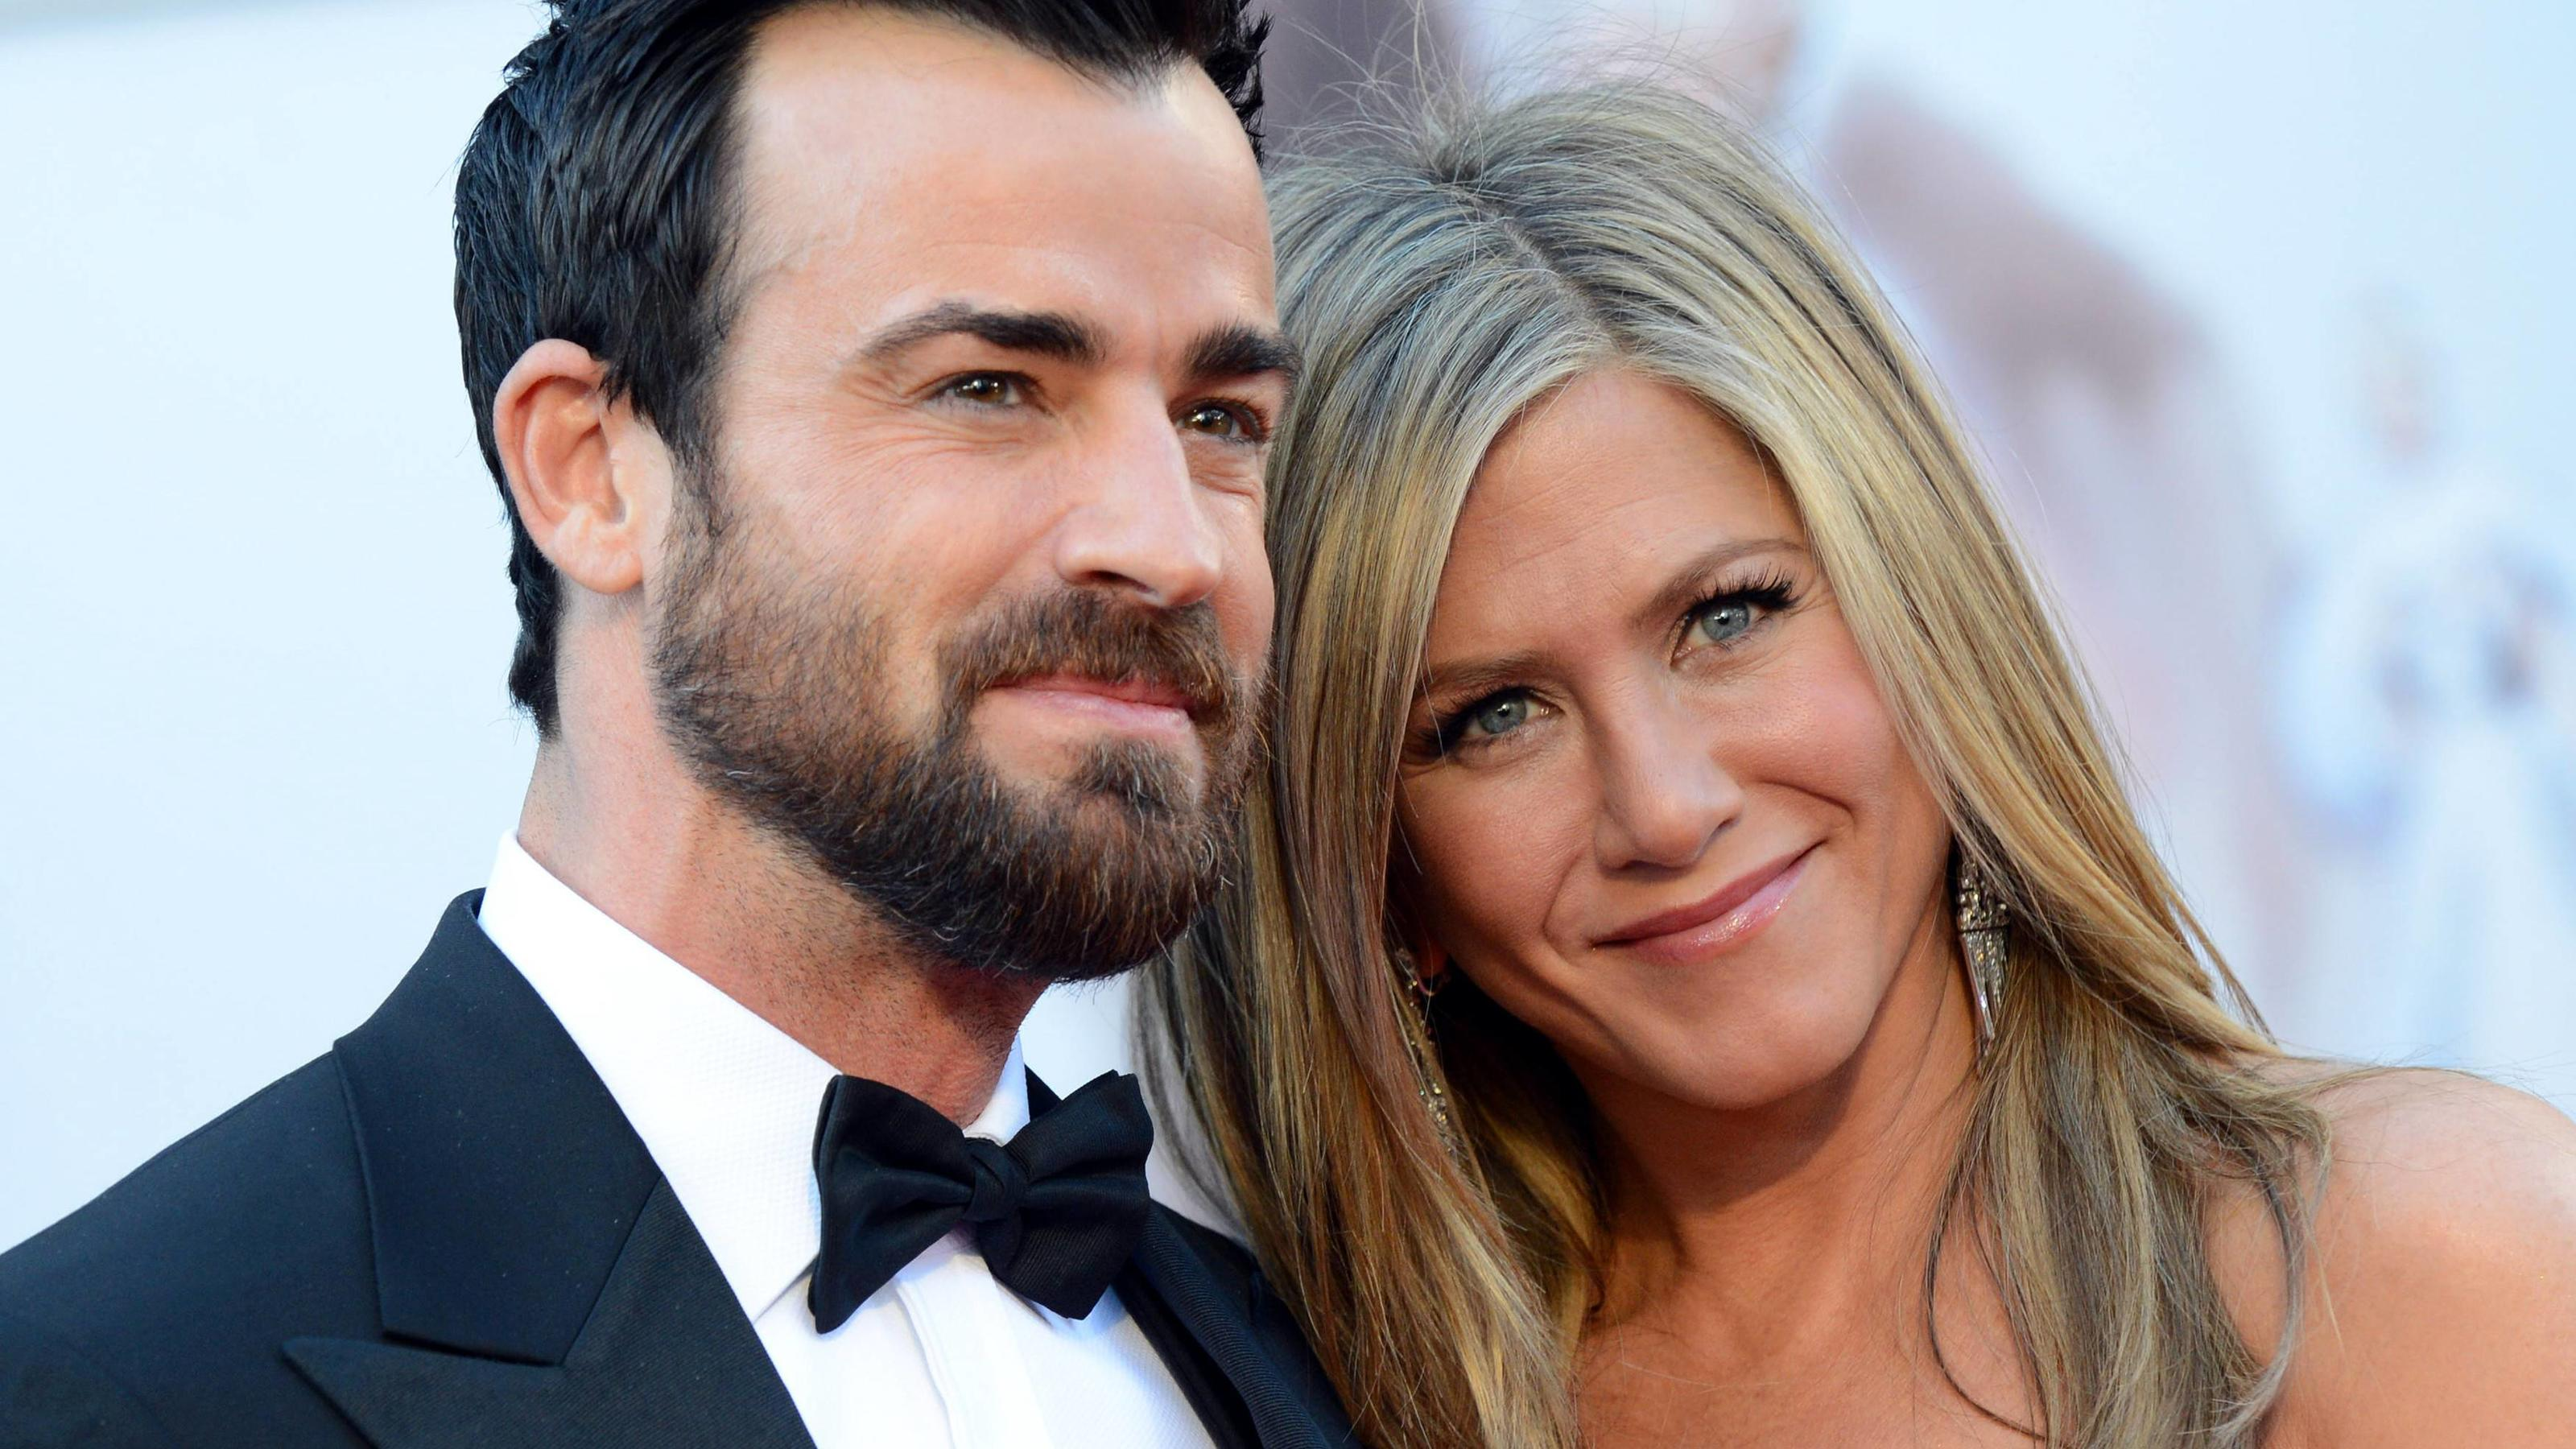 Liebes Aus Bei Jennifer Aniston Justin Theroux Waren